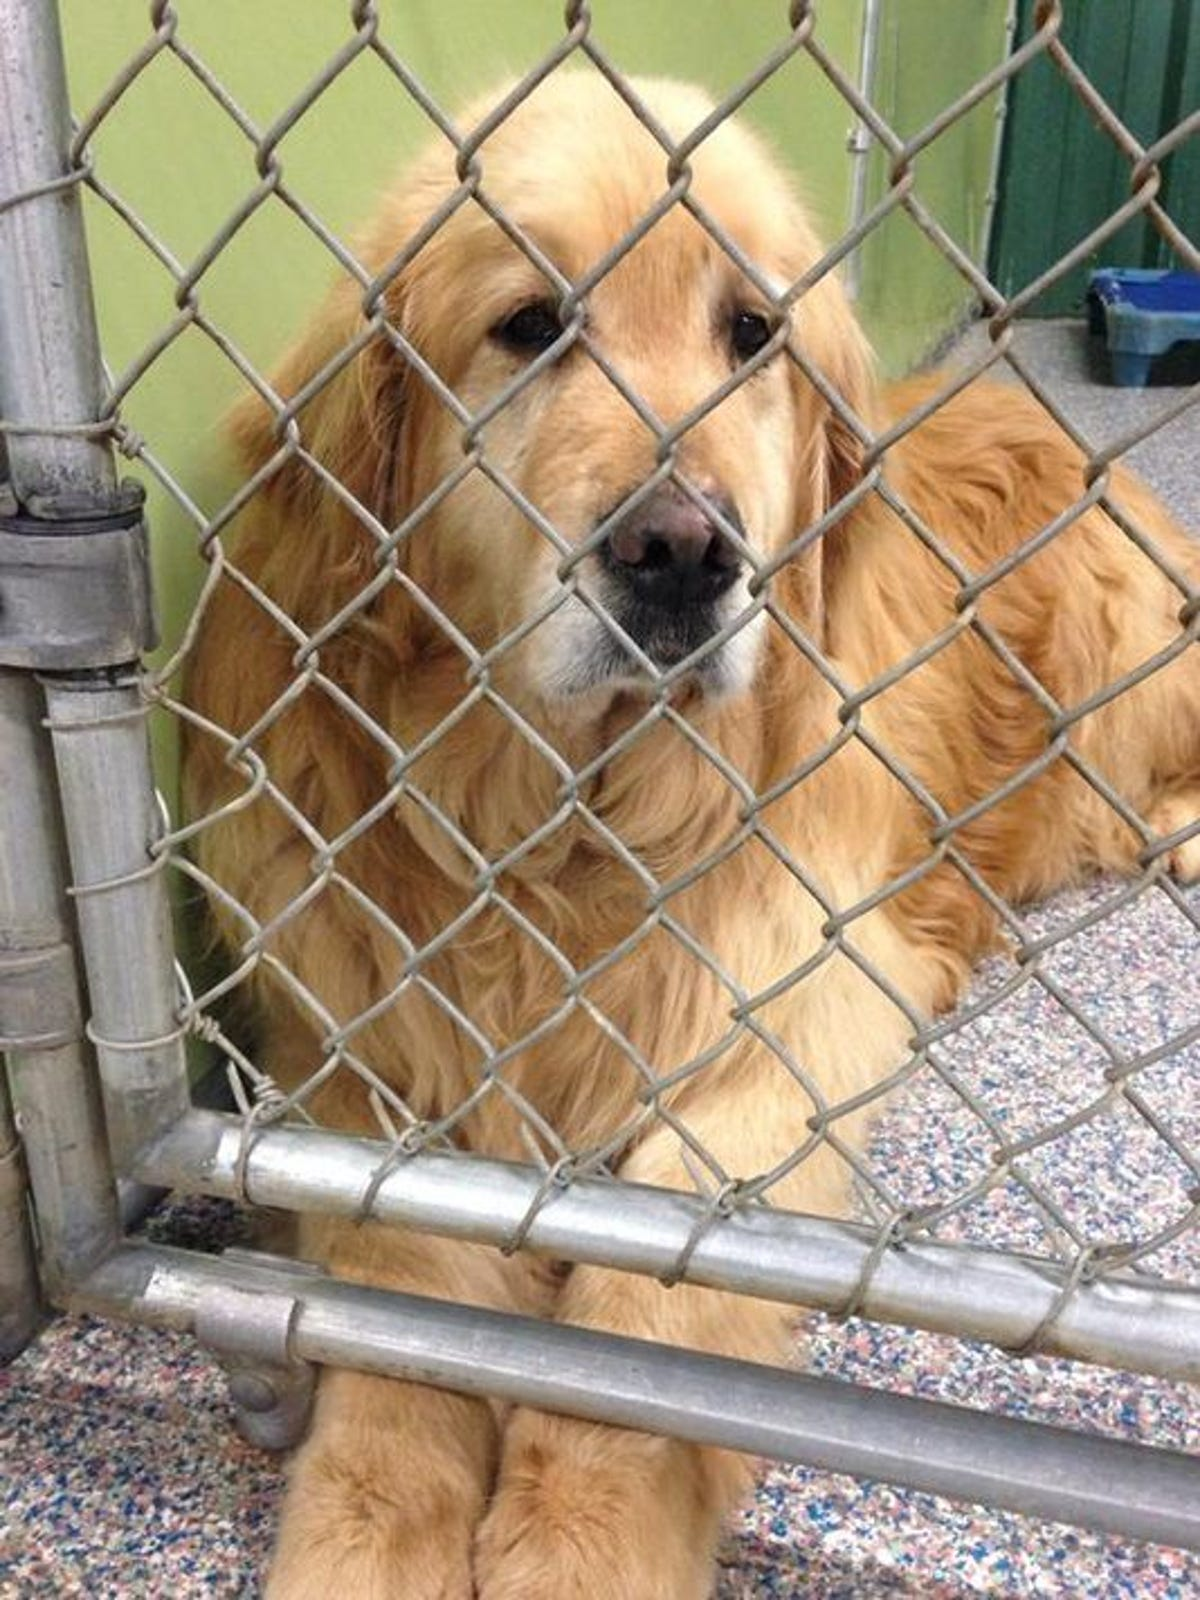 36 abandoned golden retrievers rescued from Turkey